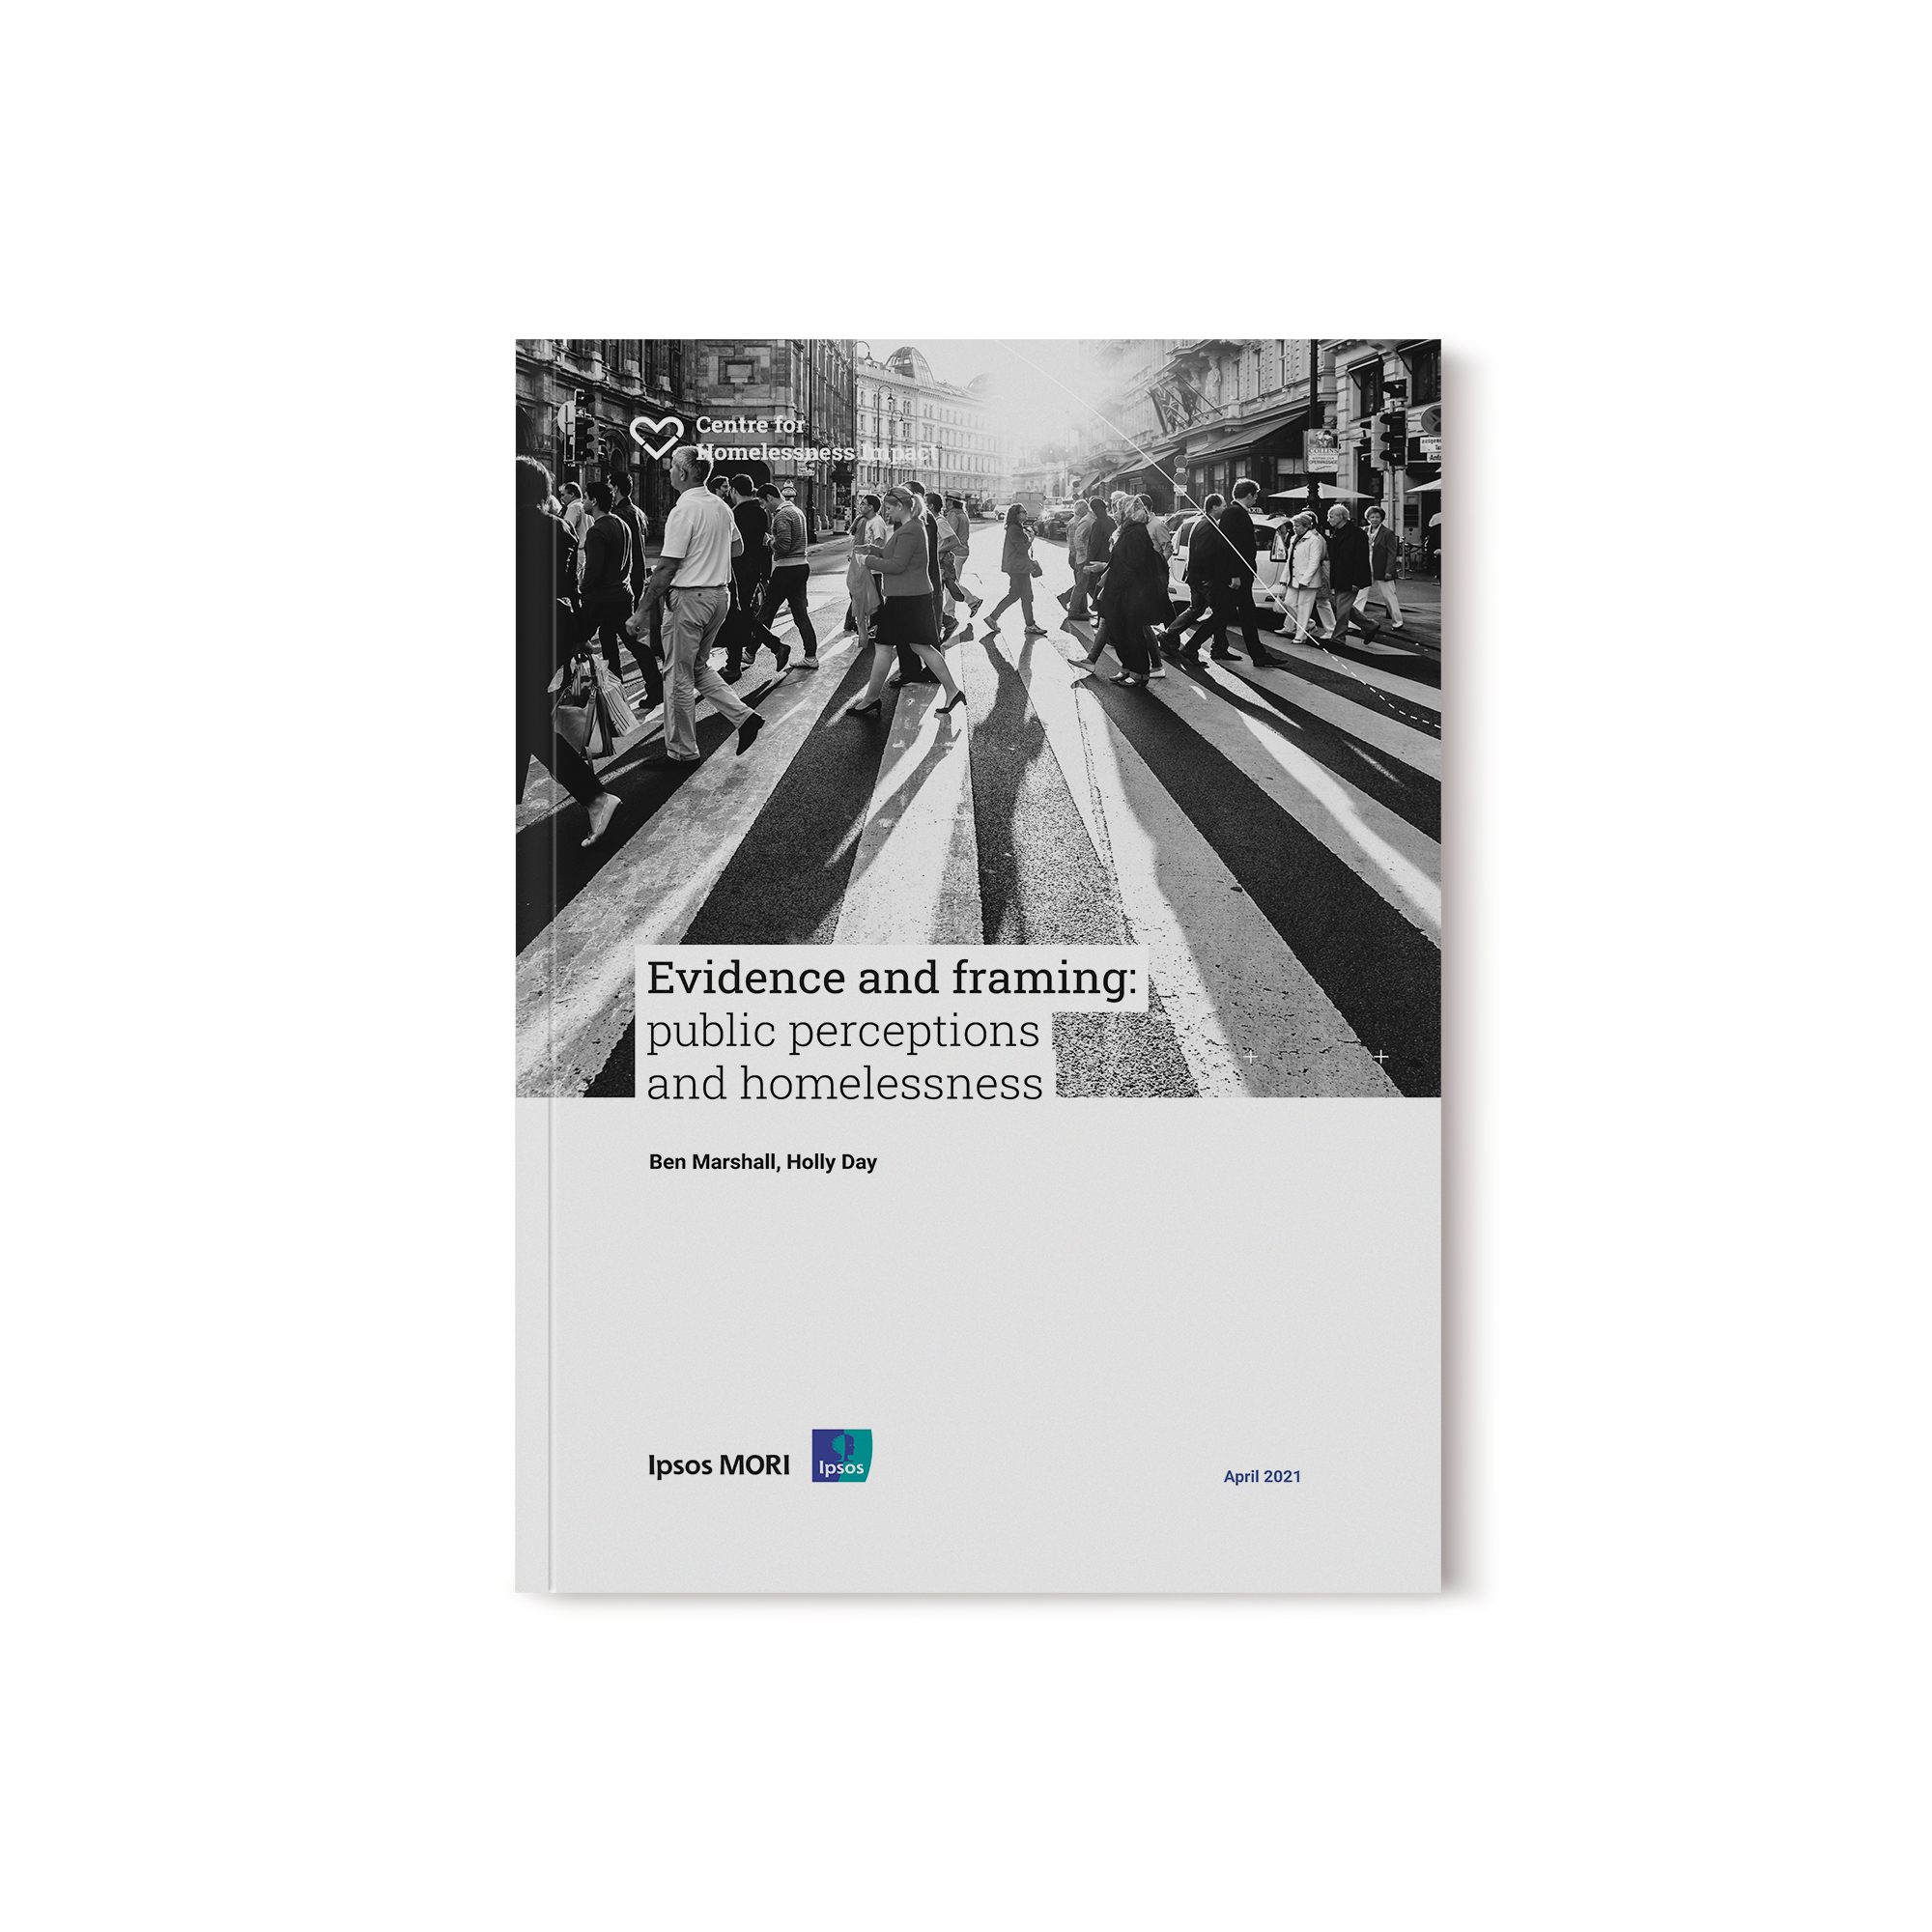 Evidence and framing: public perceptions and homelessness